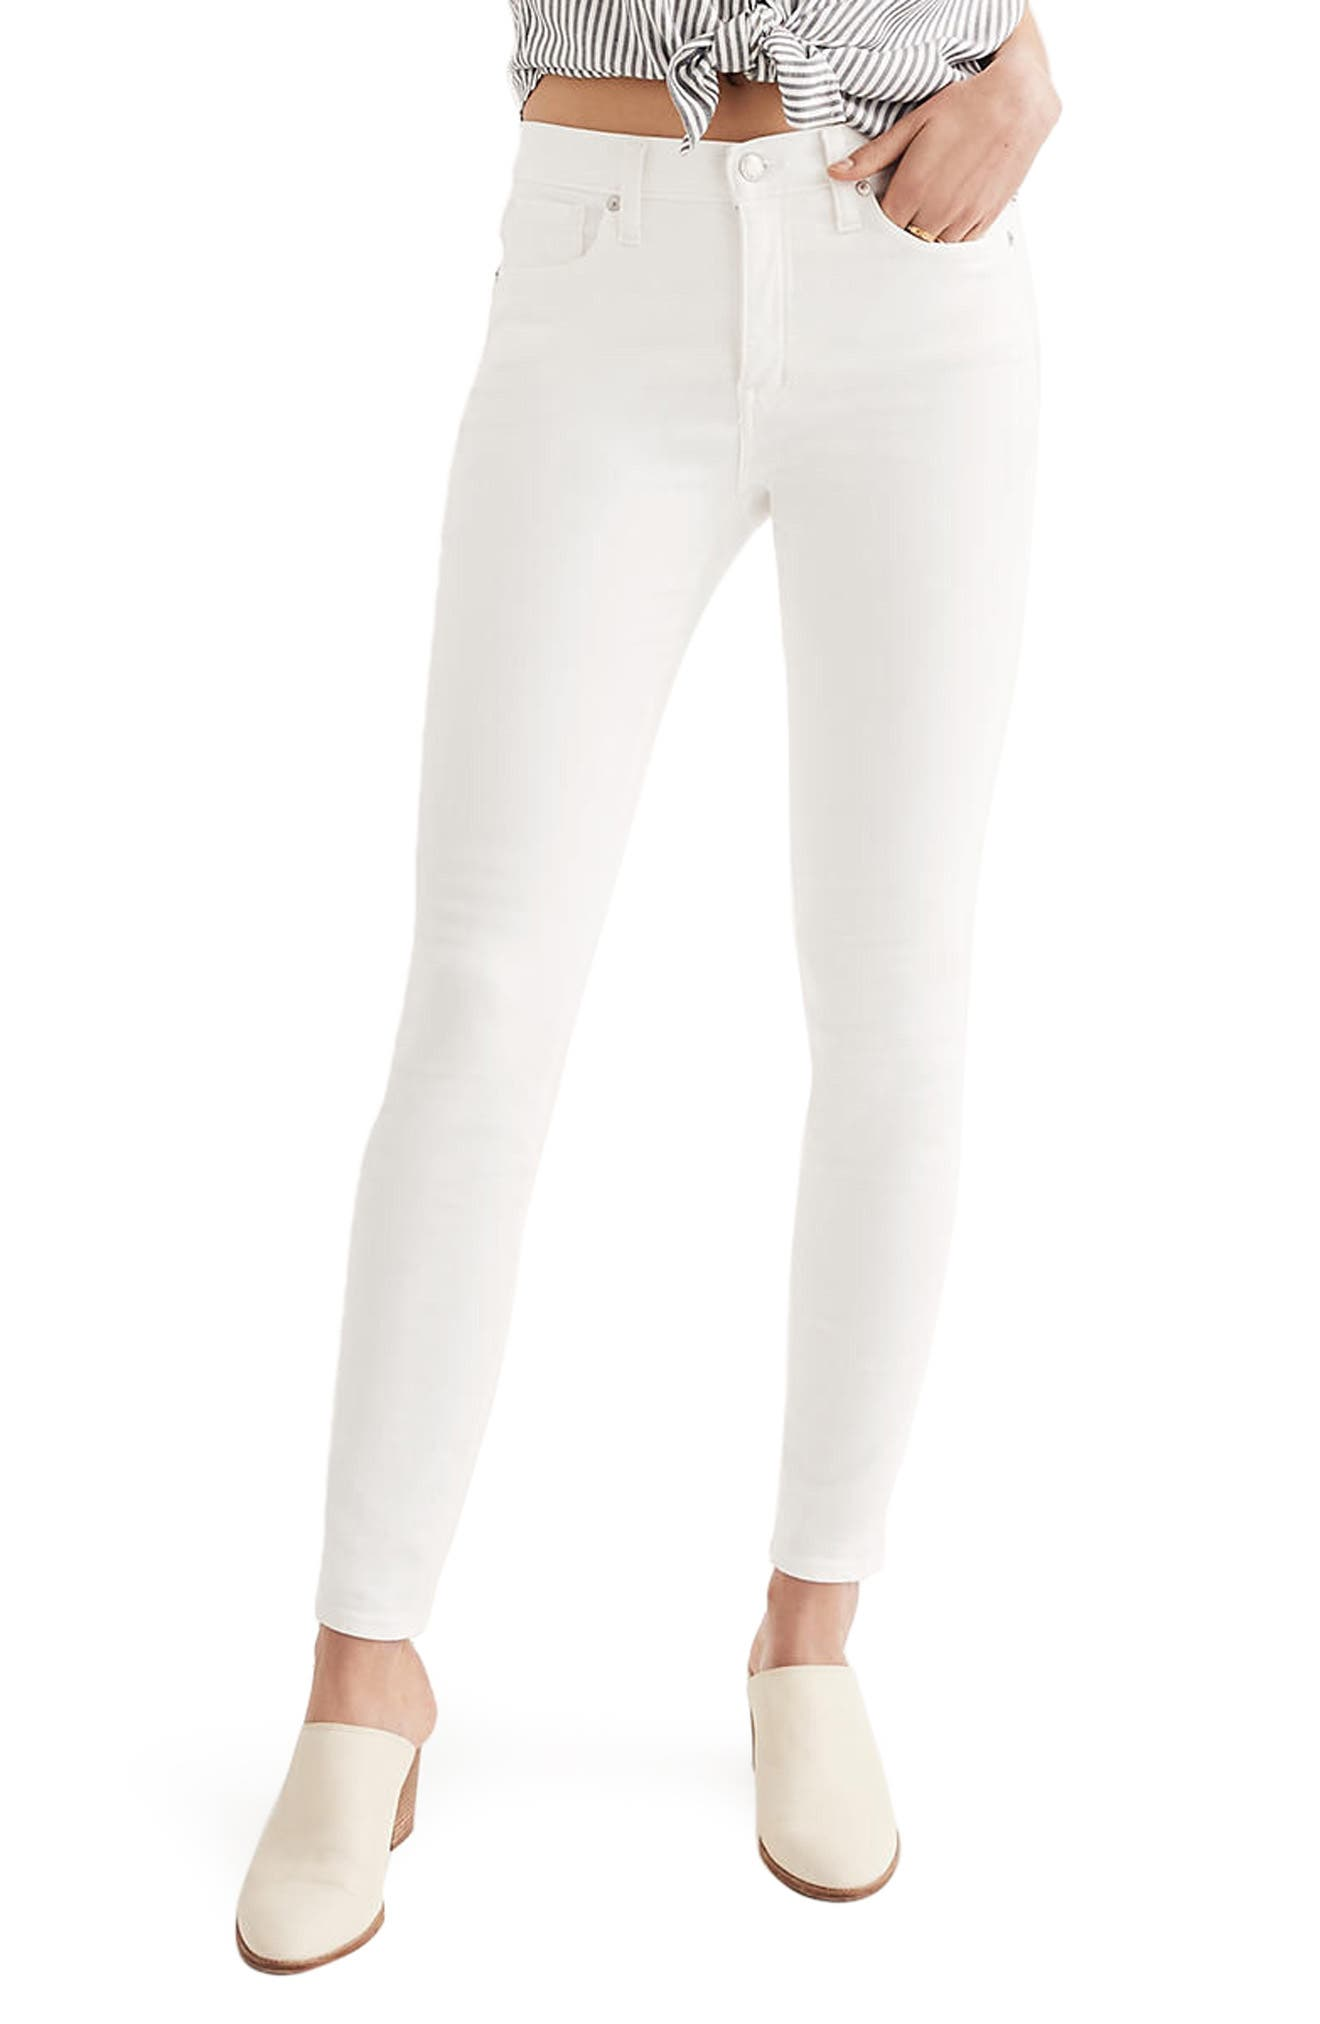 9-Inch High Waist Skinny Jeans,                         Main,                         color, Pure White